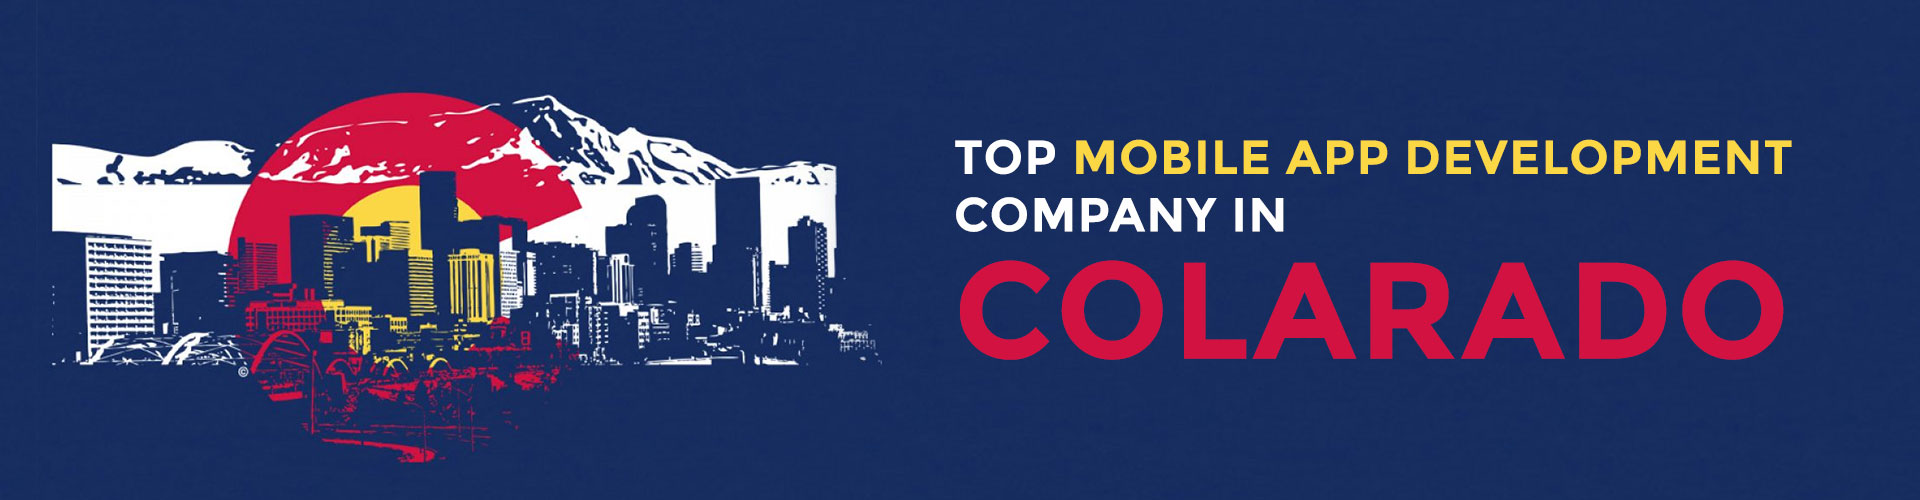 mobile app development company colorado